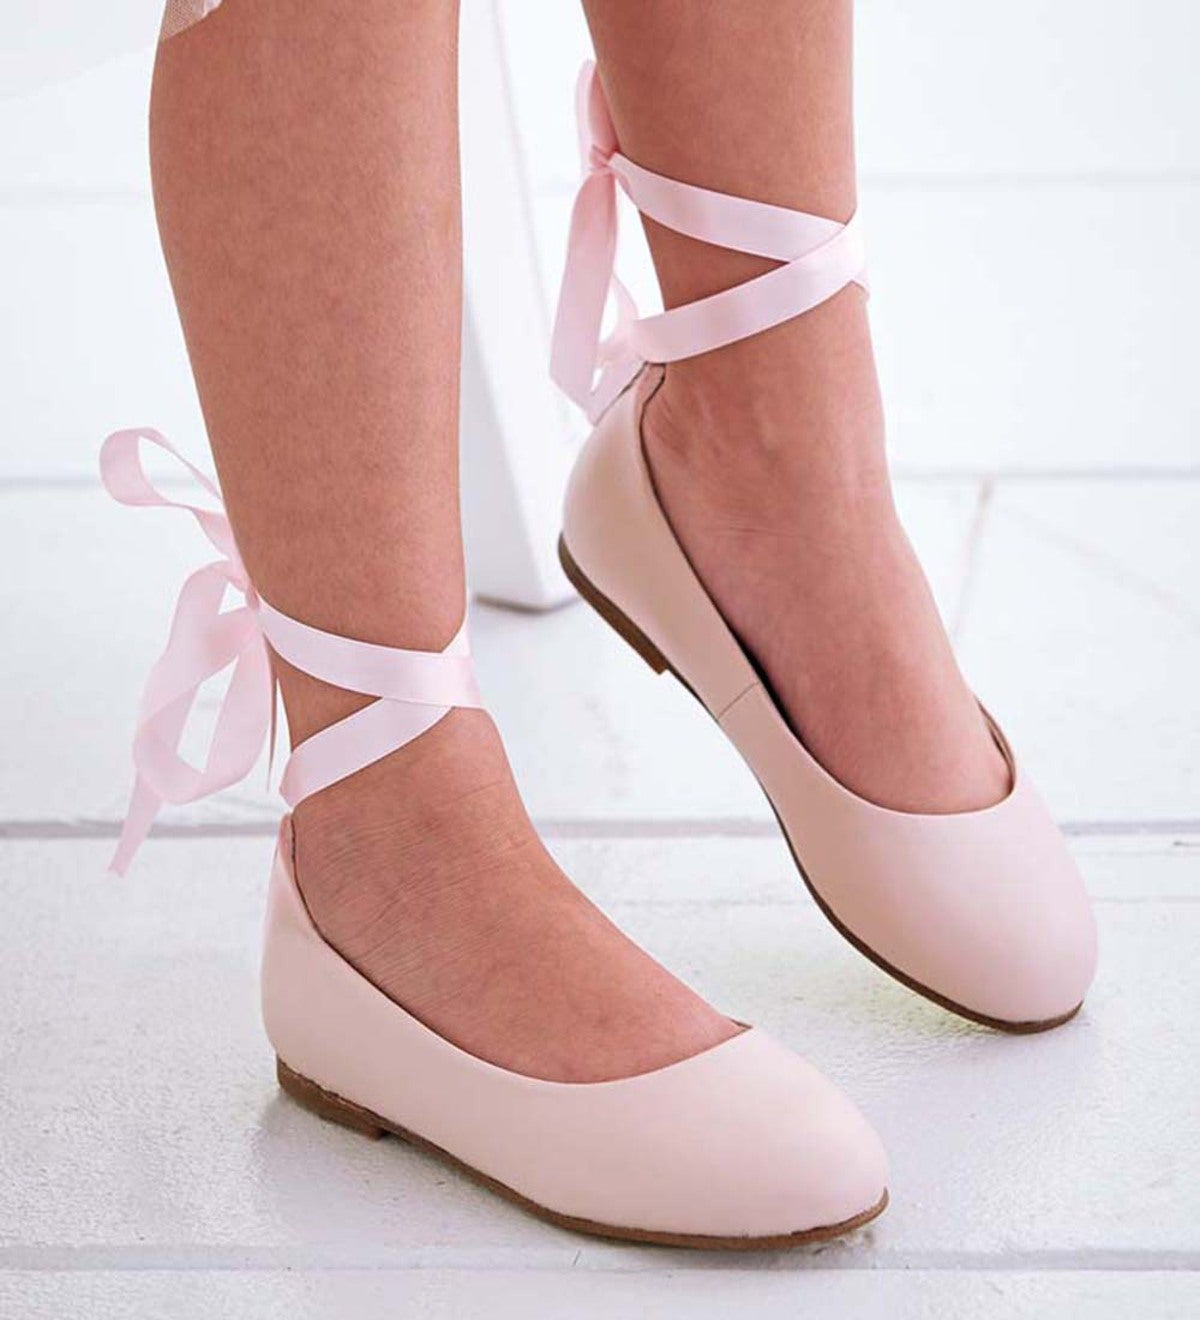 Lace-Up Ballet Flat - Pink - Size 1